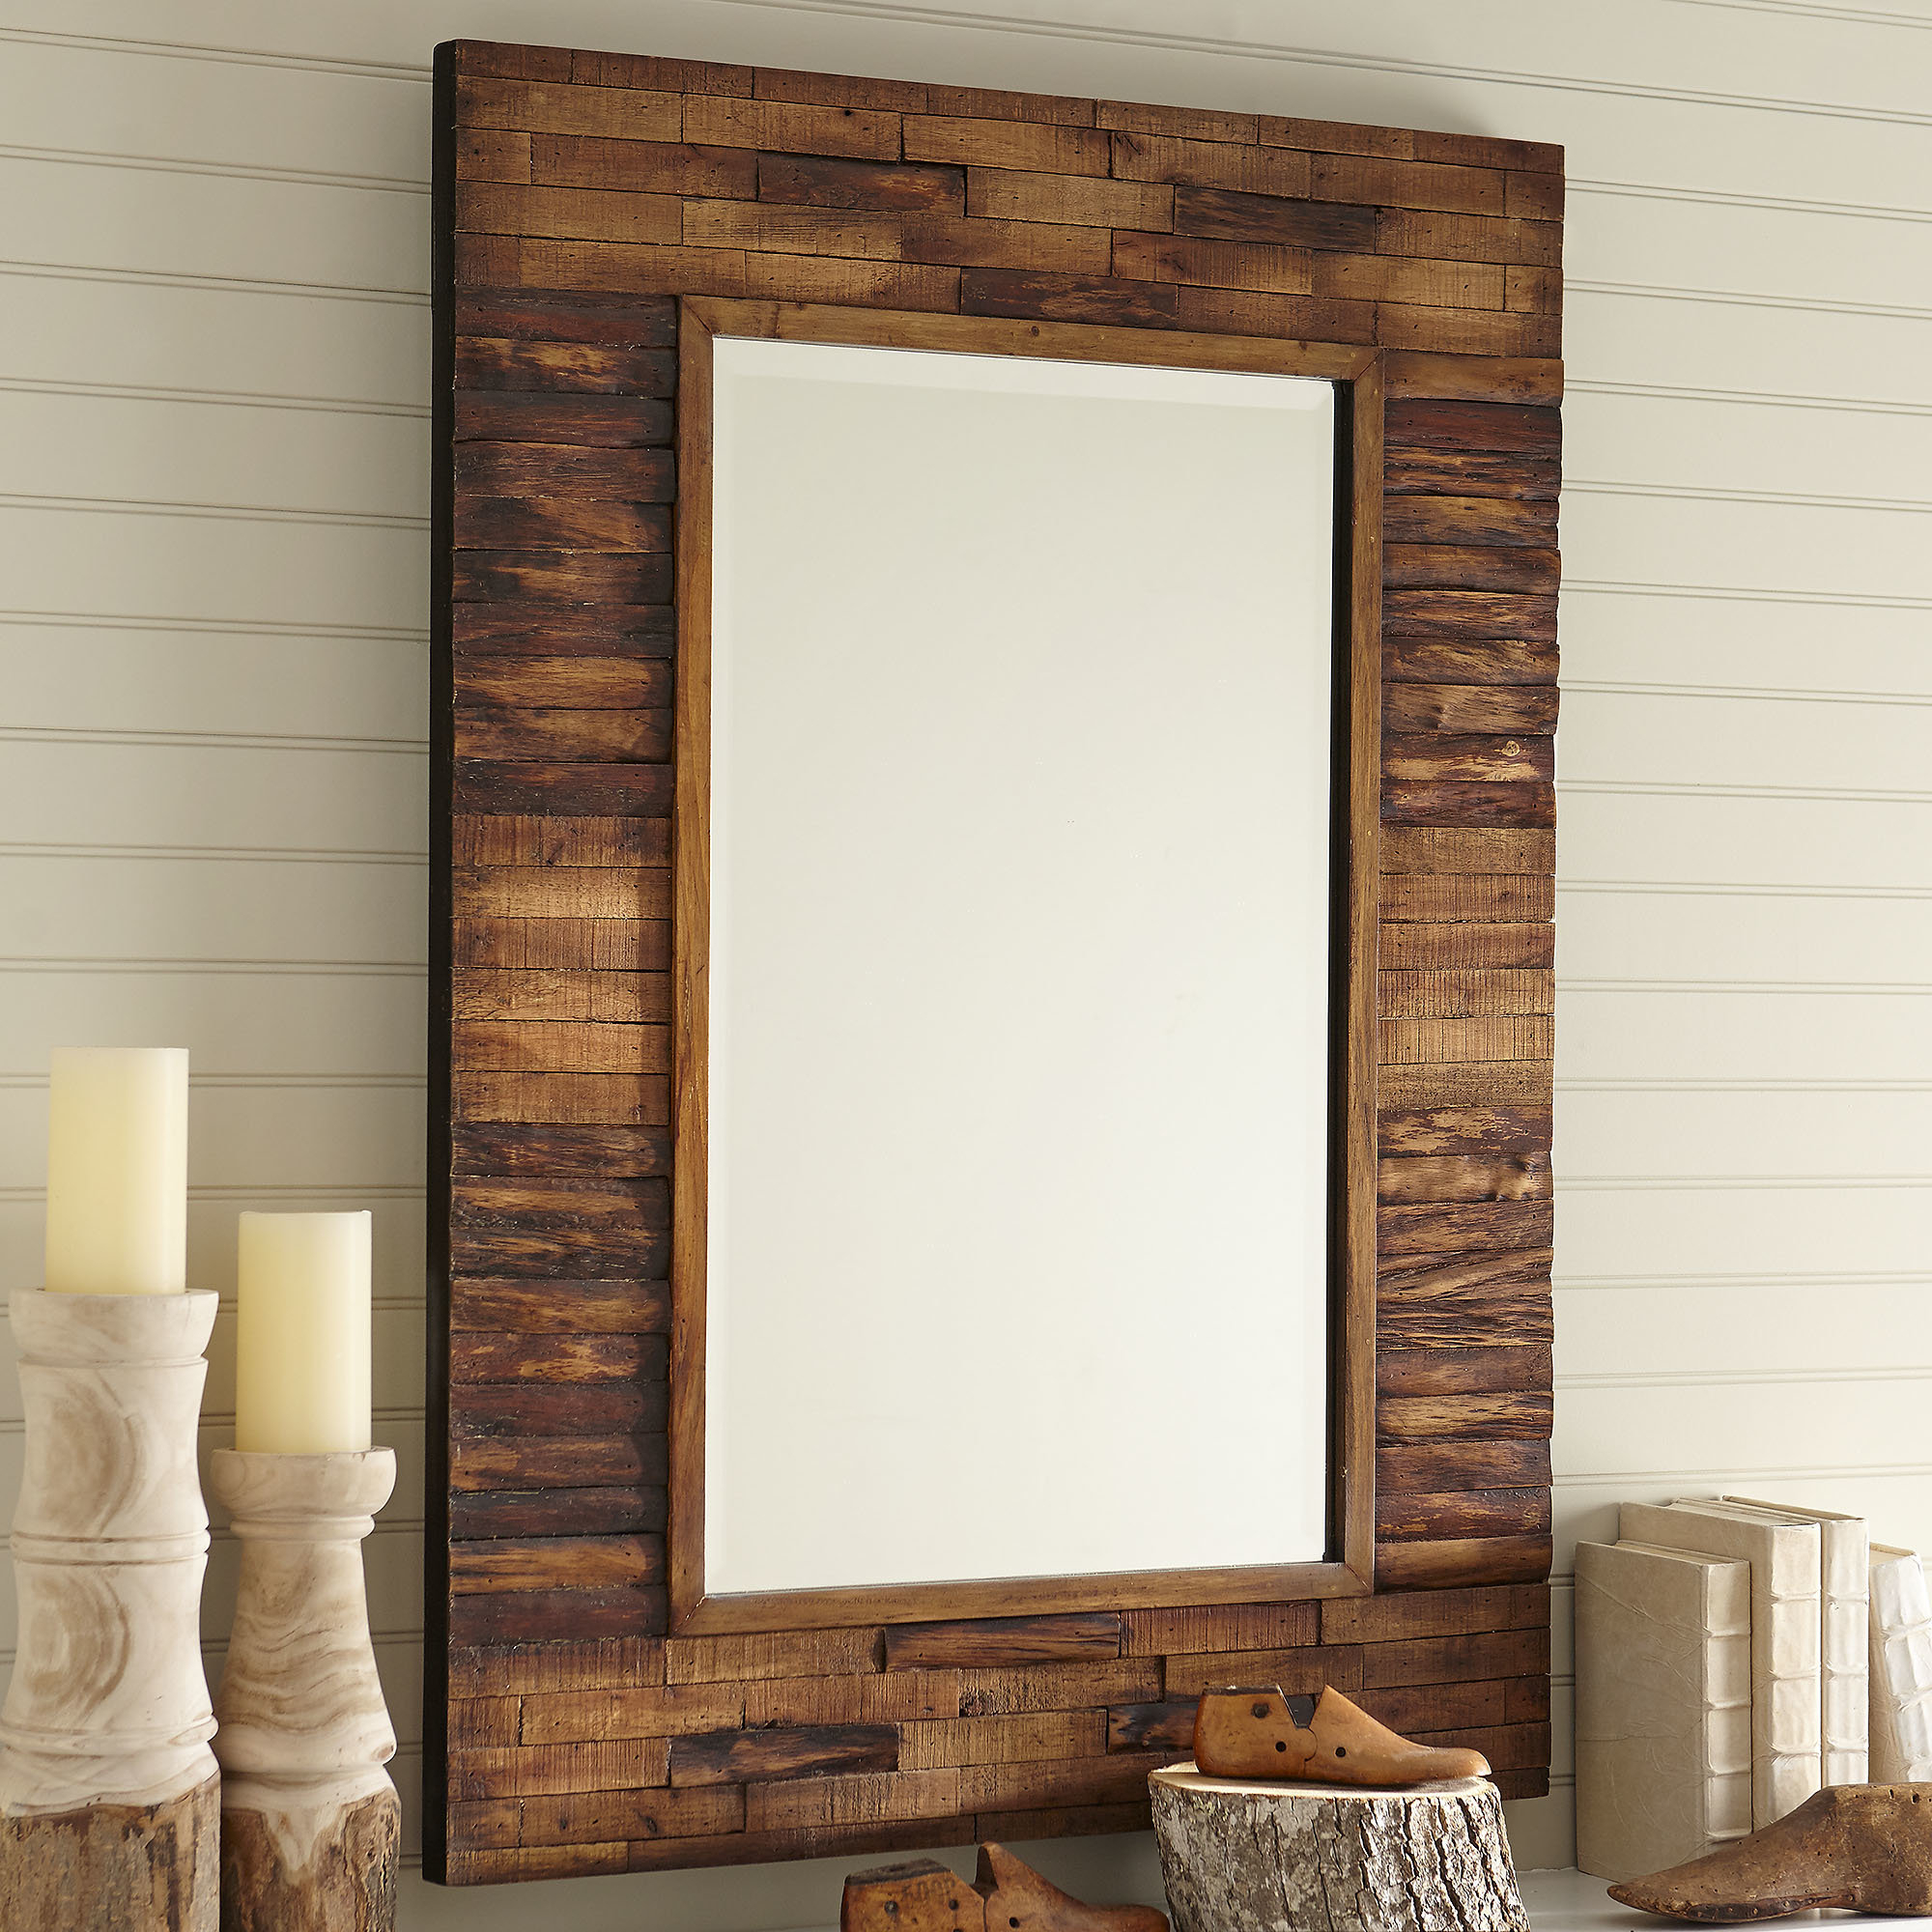 Booth Reclaimed Wall Mirror Accent Pertaining To Newtown Accent Mirrors (View 13 of 30)